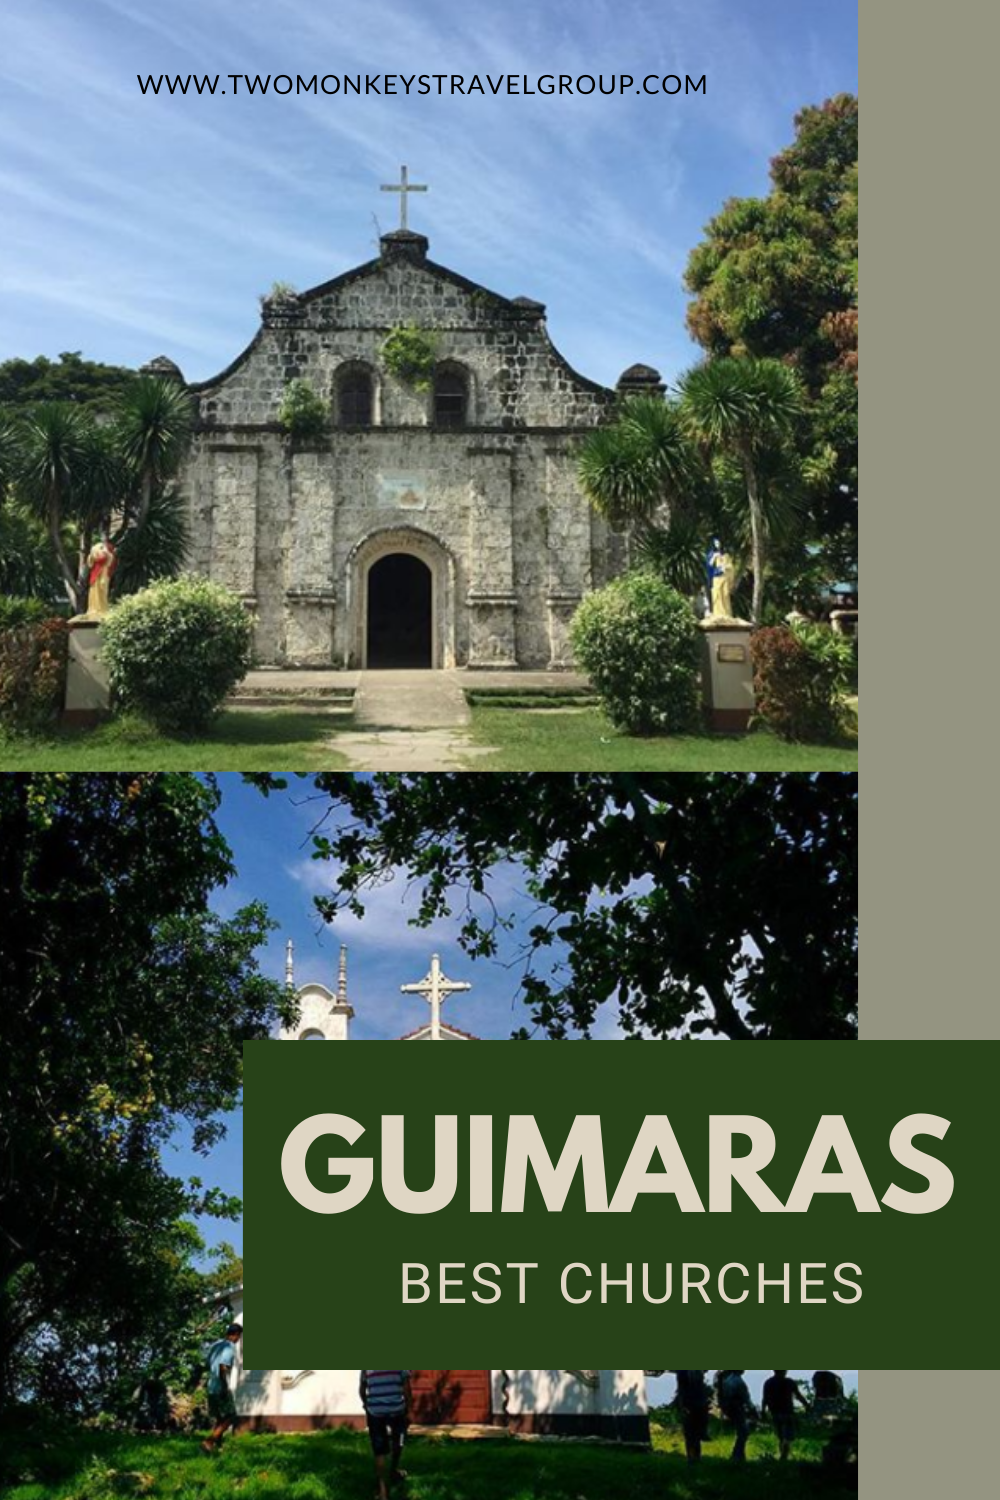 7 Best Churches in Guimaras [Itinerary for Visita Iglesia in Guimaras, Visayas]